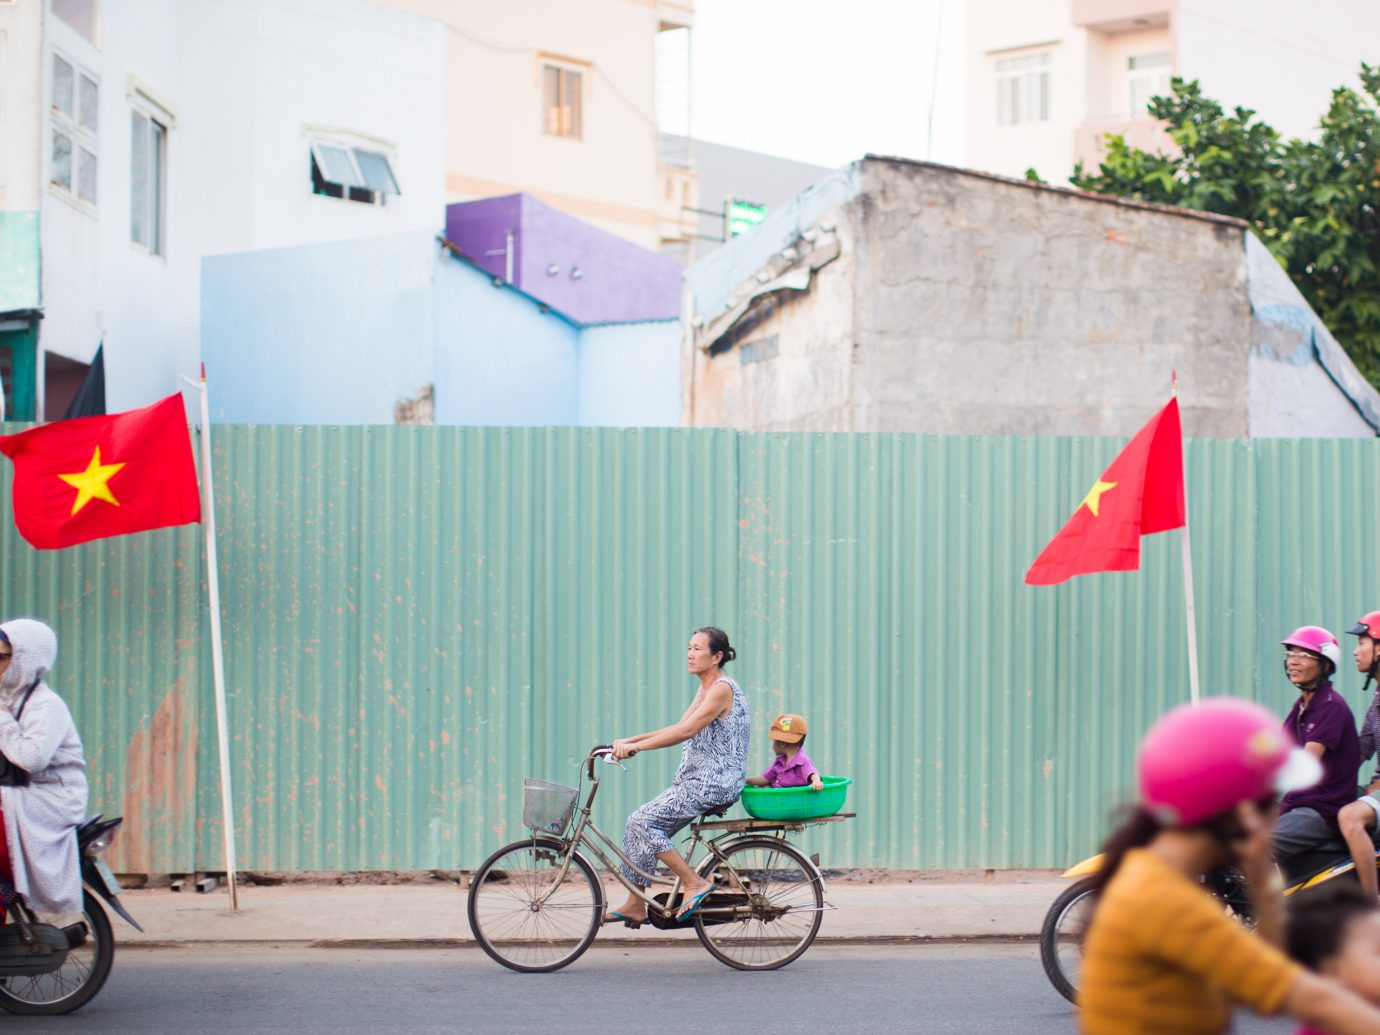 bicycle building outdoor riding road person street rider vehicle past